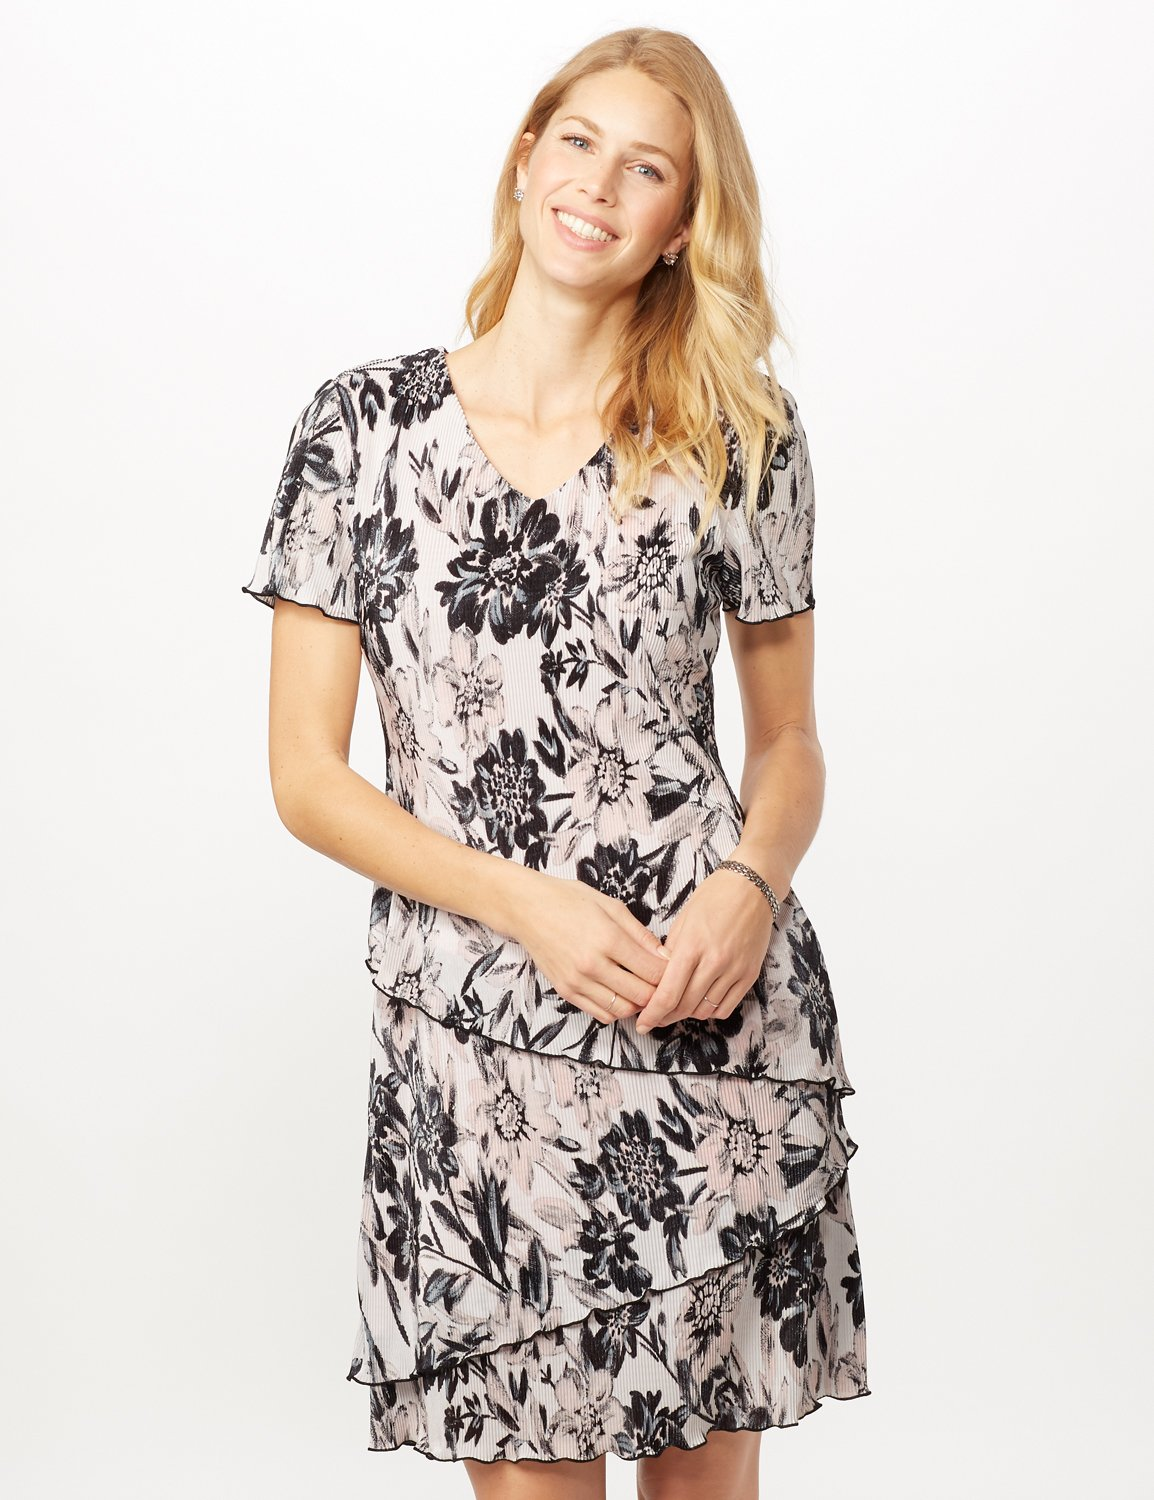 Floral Bodre Tier Dress -White/black - Front